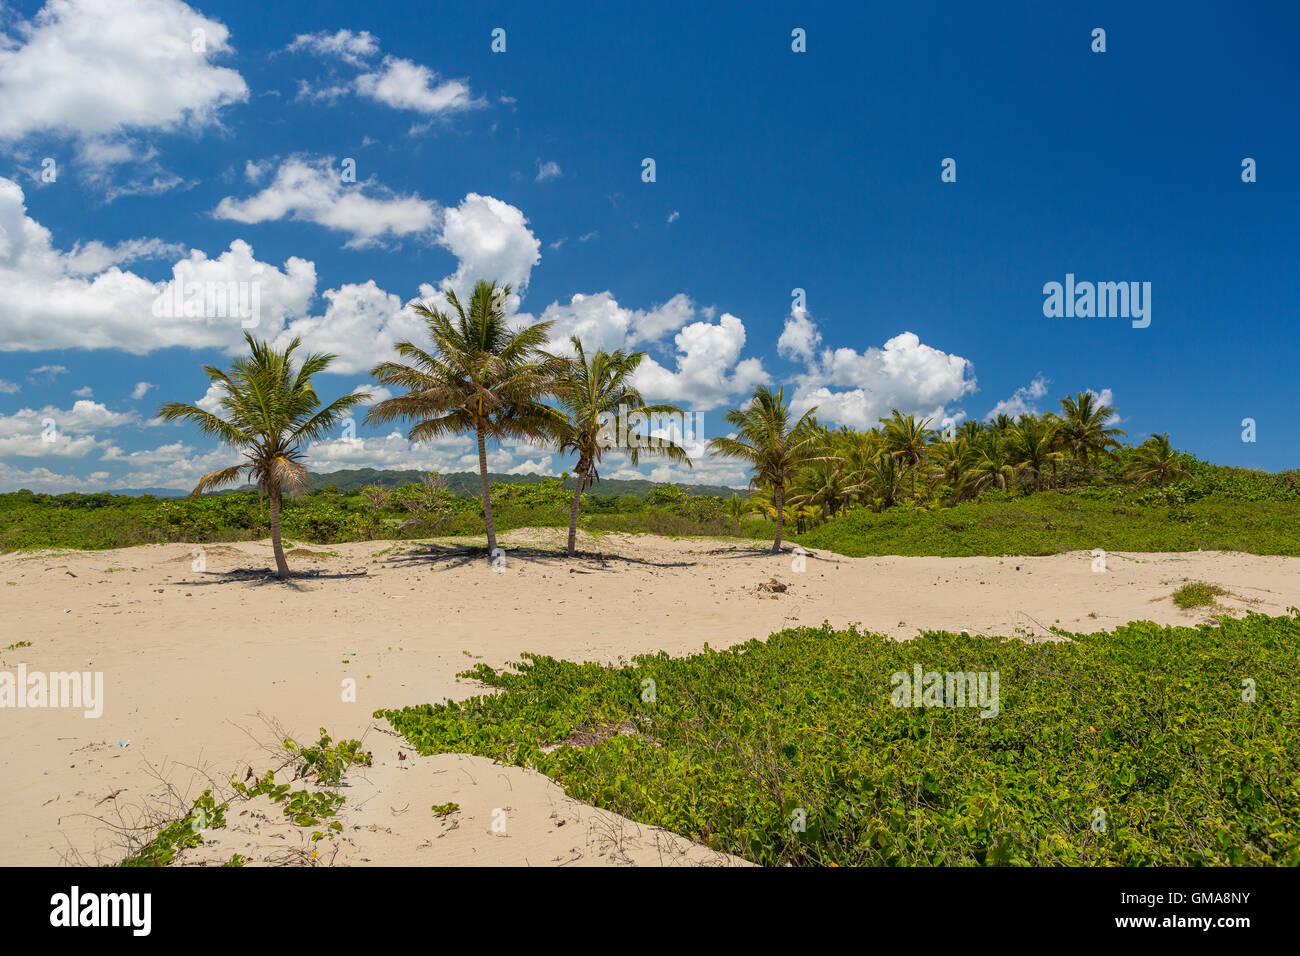 DOMINICAN REPUBLIC - Beach landscape with palm trees at mouth of Yasica River, near Cabarete. - Stock Image